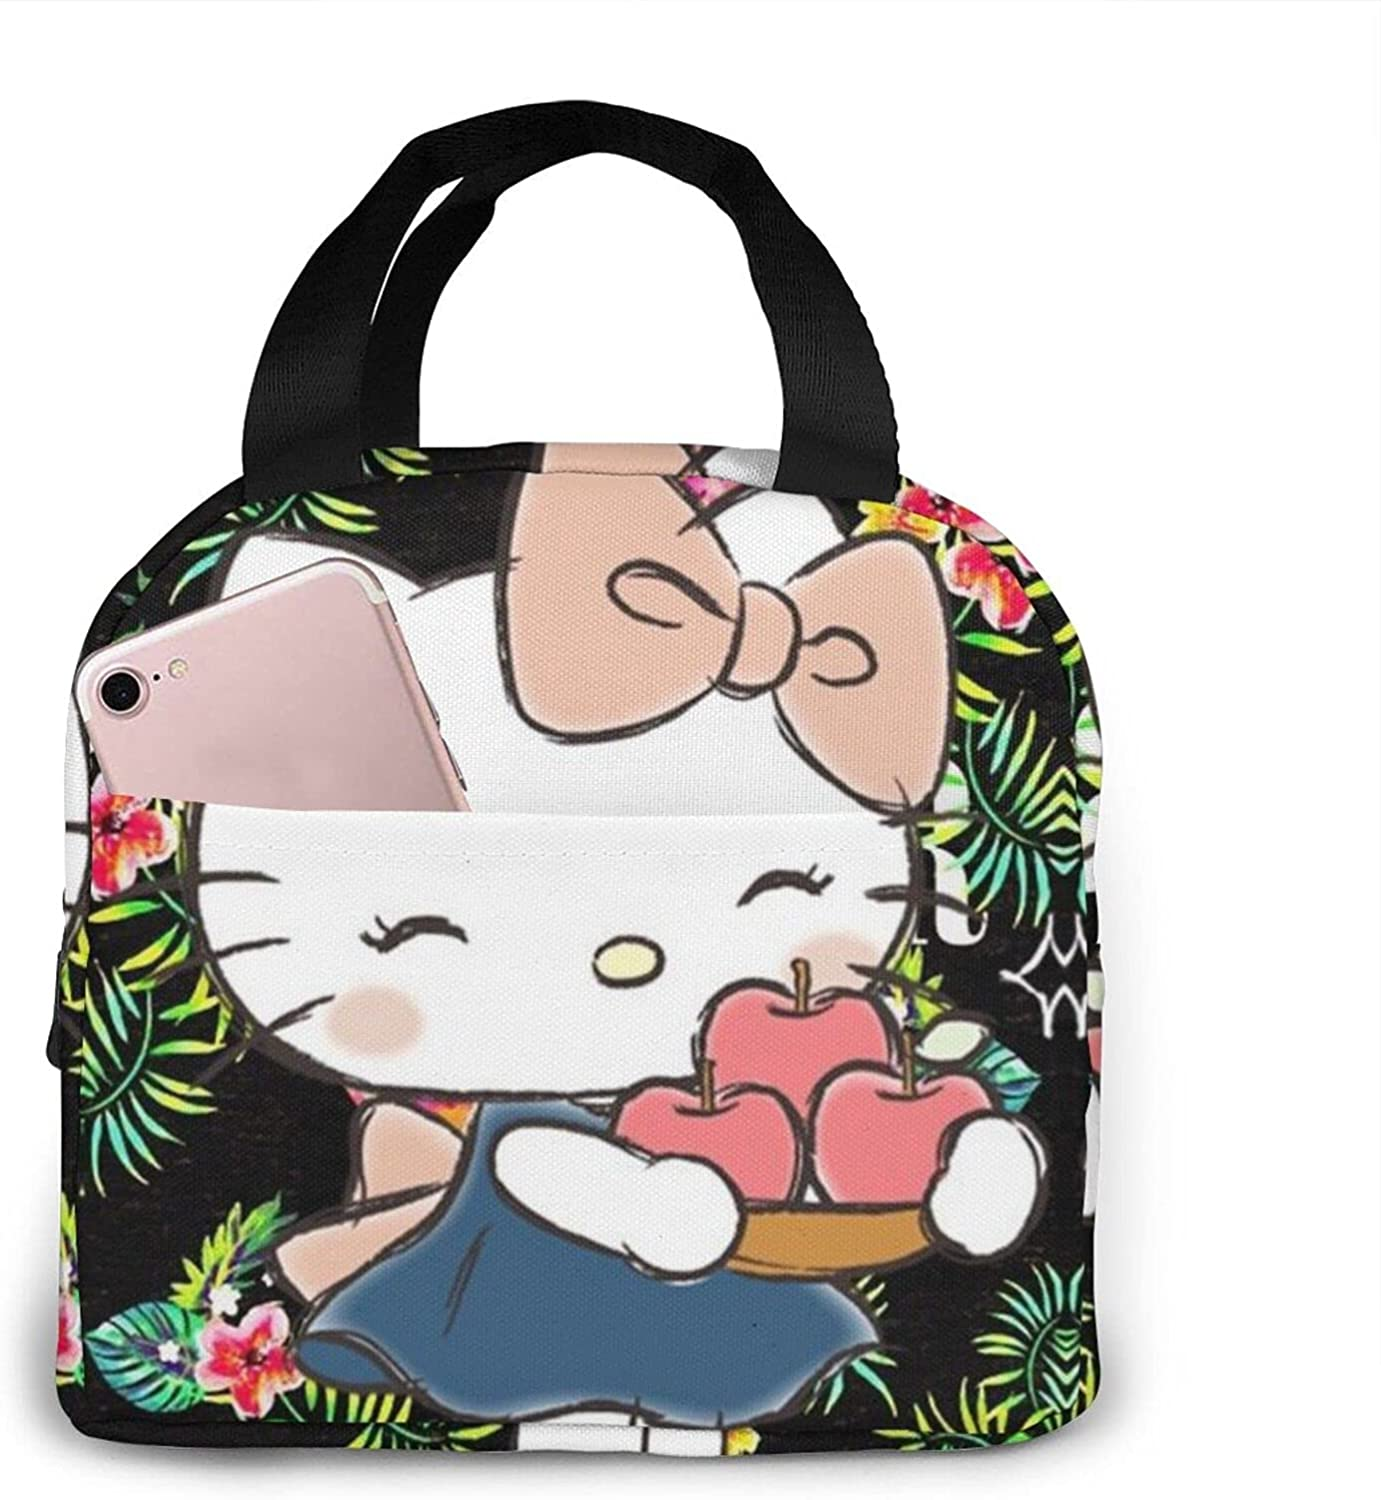 Hello Kitty Lunch Bag Tote Bag Insulated Lunch Box